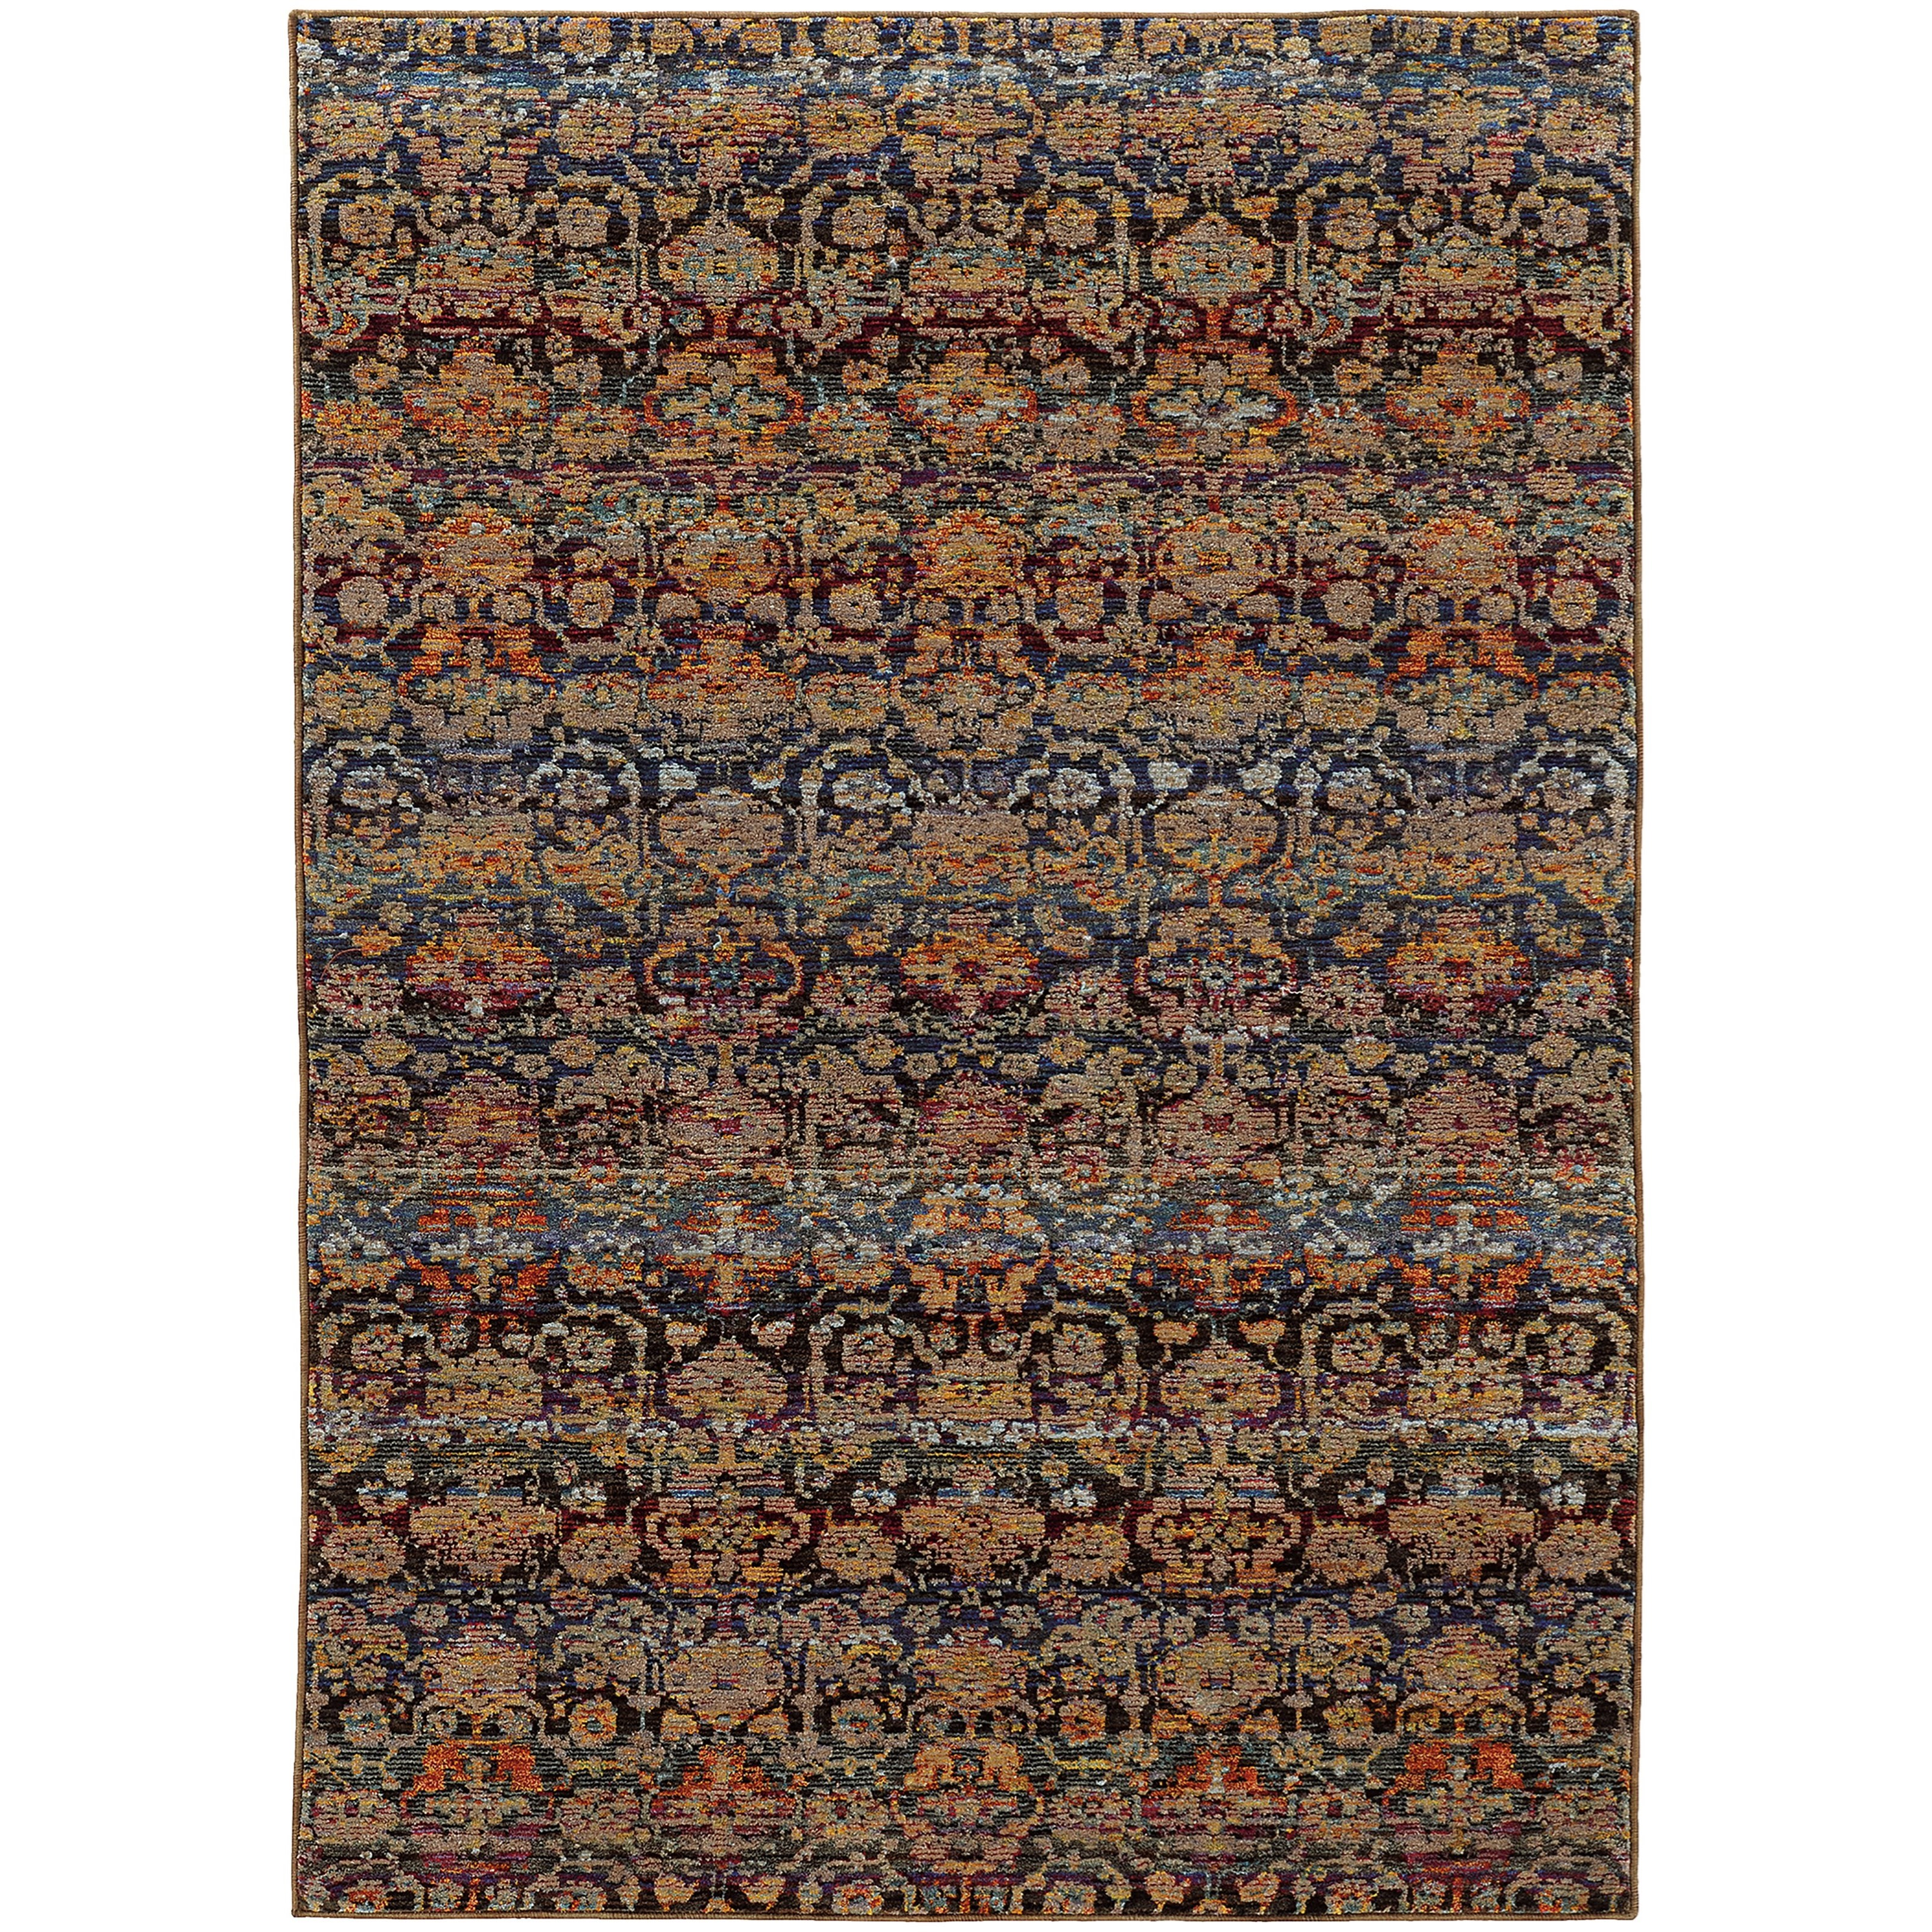 "Andorra 5' 3"" X  7' 3"" Casual Multi/ Blue Rectangle  by Oriental Weavers at Steger's Furniture"